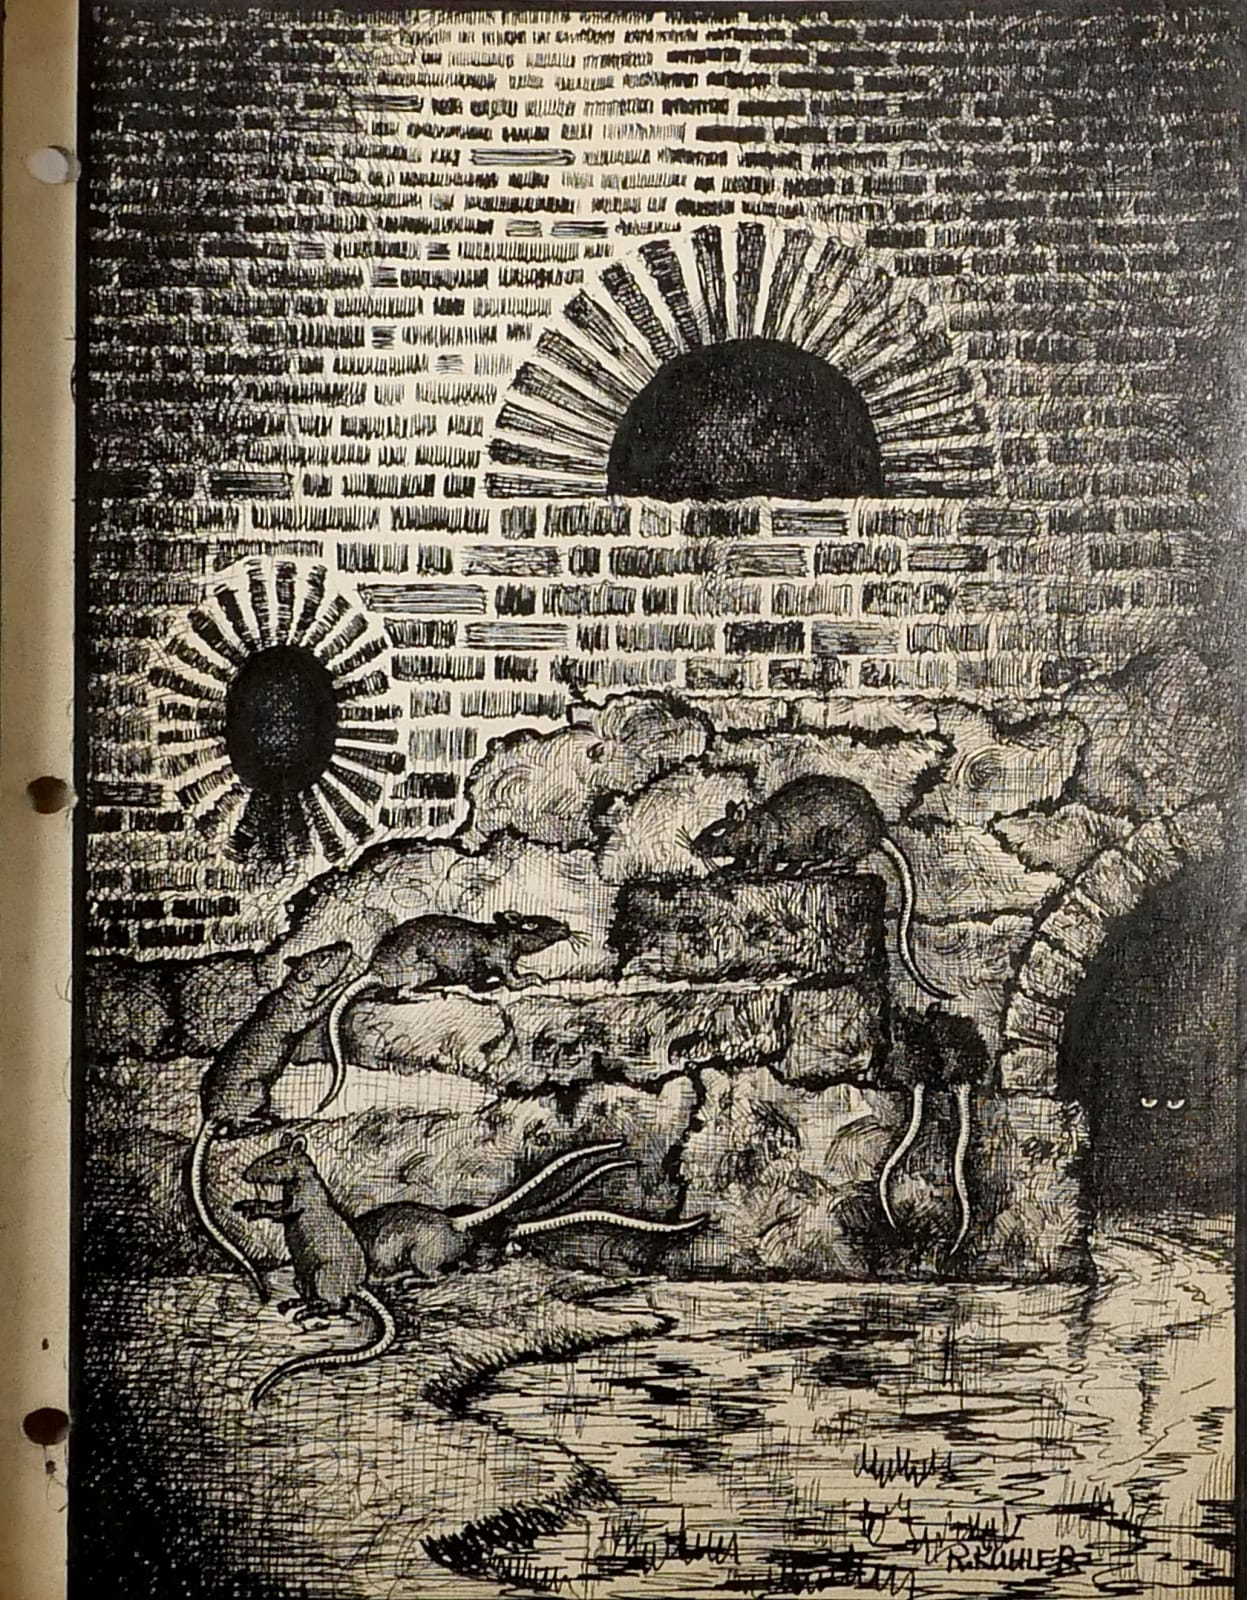 Sewer rats on brick wall ca. 1950 Black ink on sketch paper 11 x 8 1/2 in (RK 113) $7,000